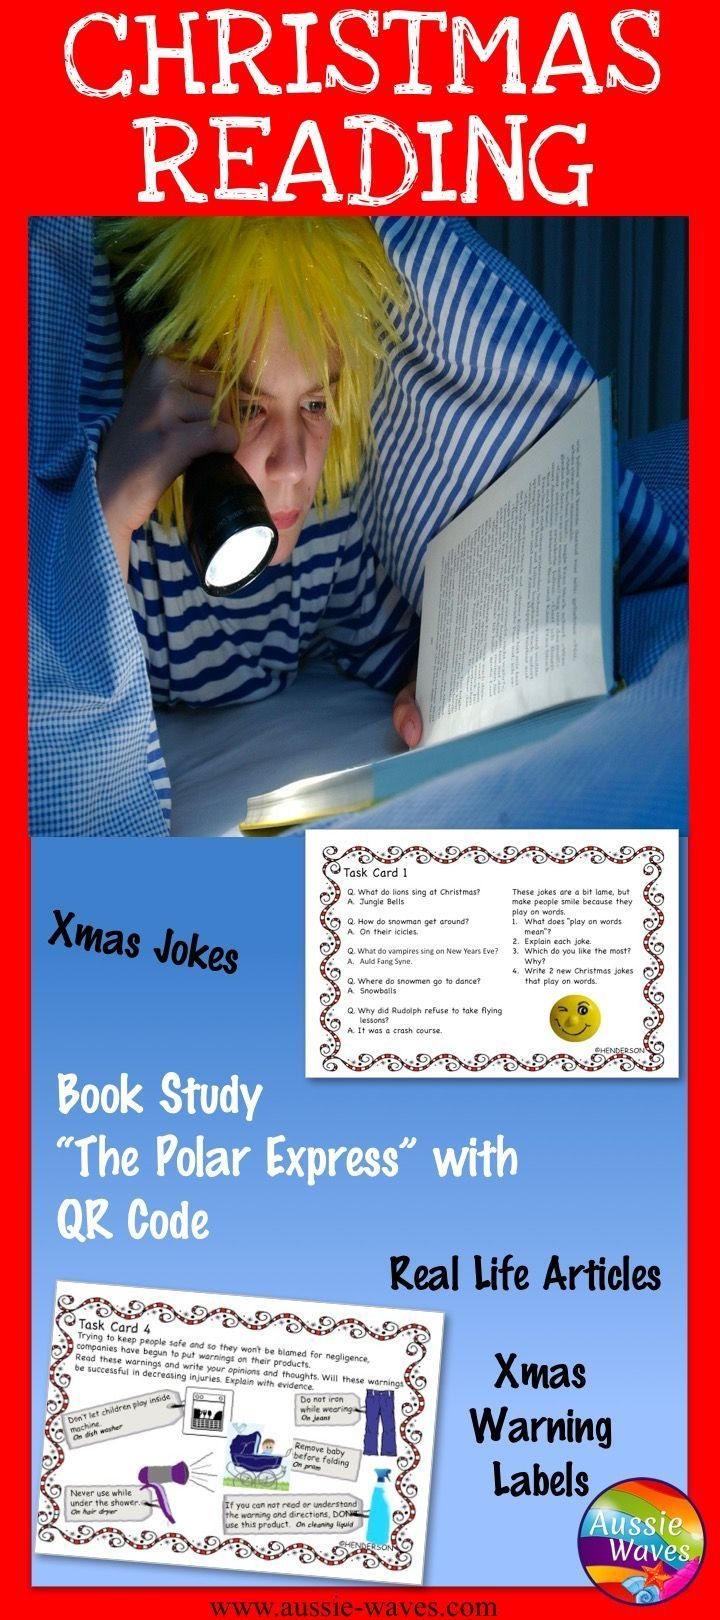 Christmas reading resources. Keep kids reading this holiday season with the Polar Express and other fun jokes, recipes and tasks.